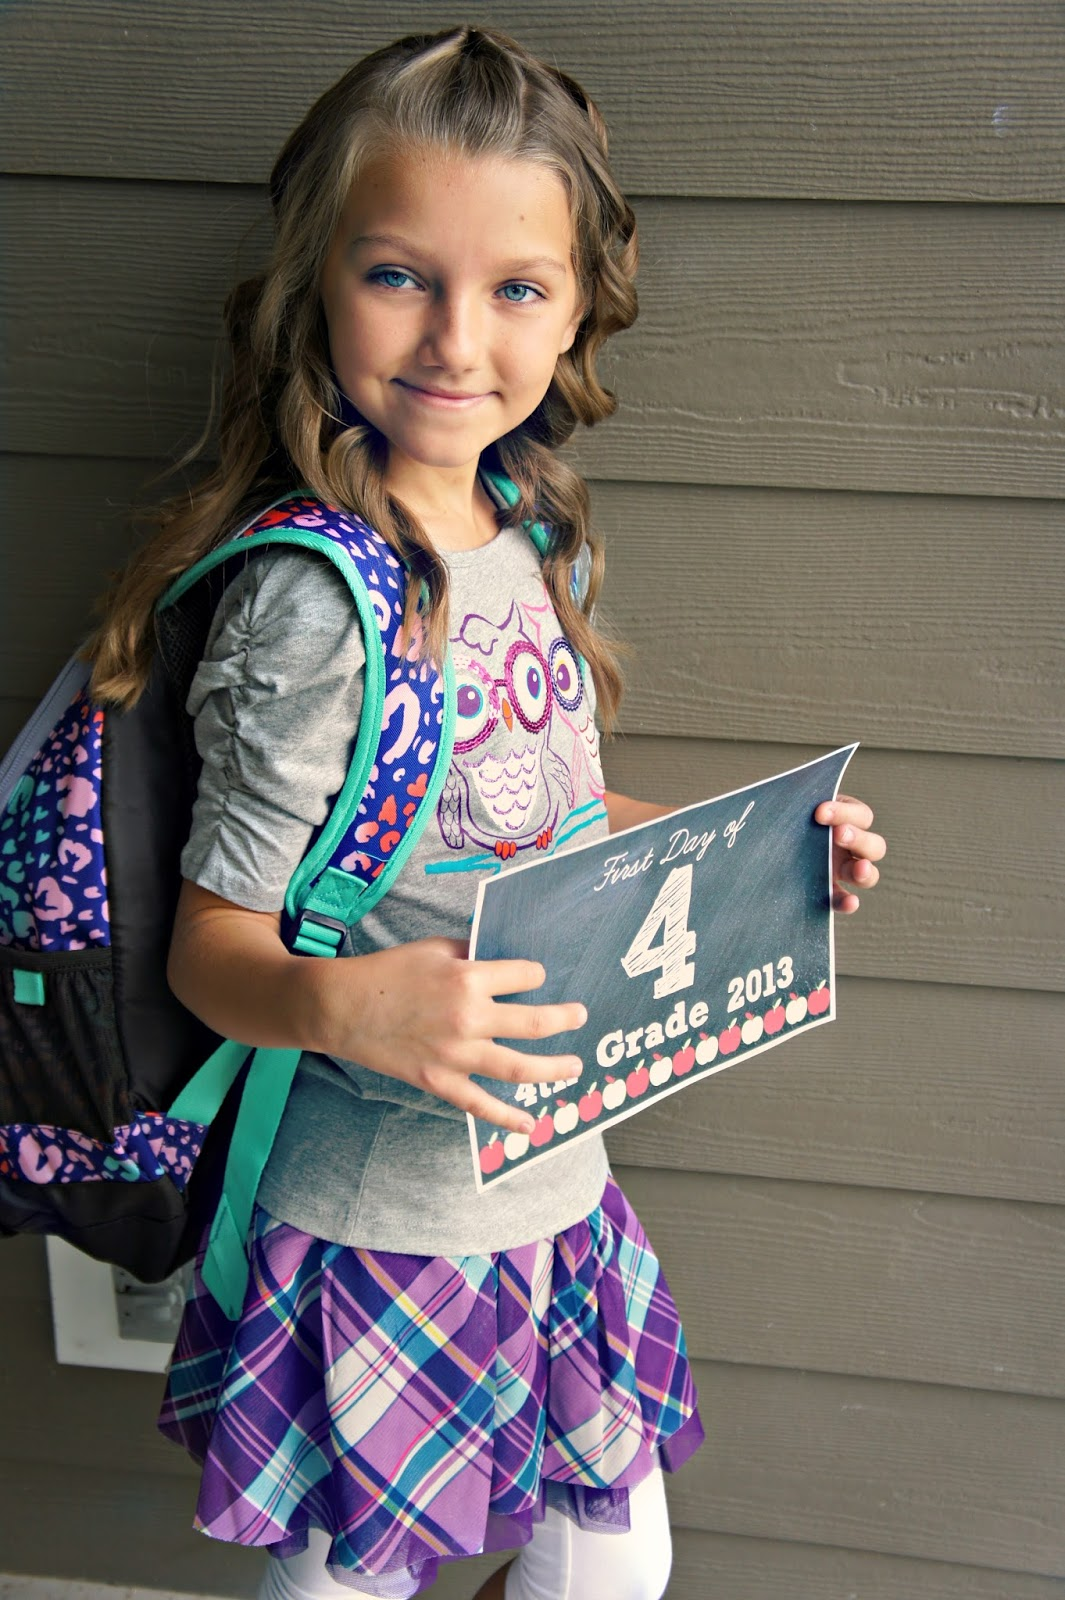 First Day Of School: First Day Of School Outfits For 4th Grade